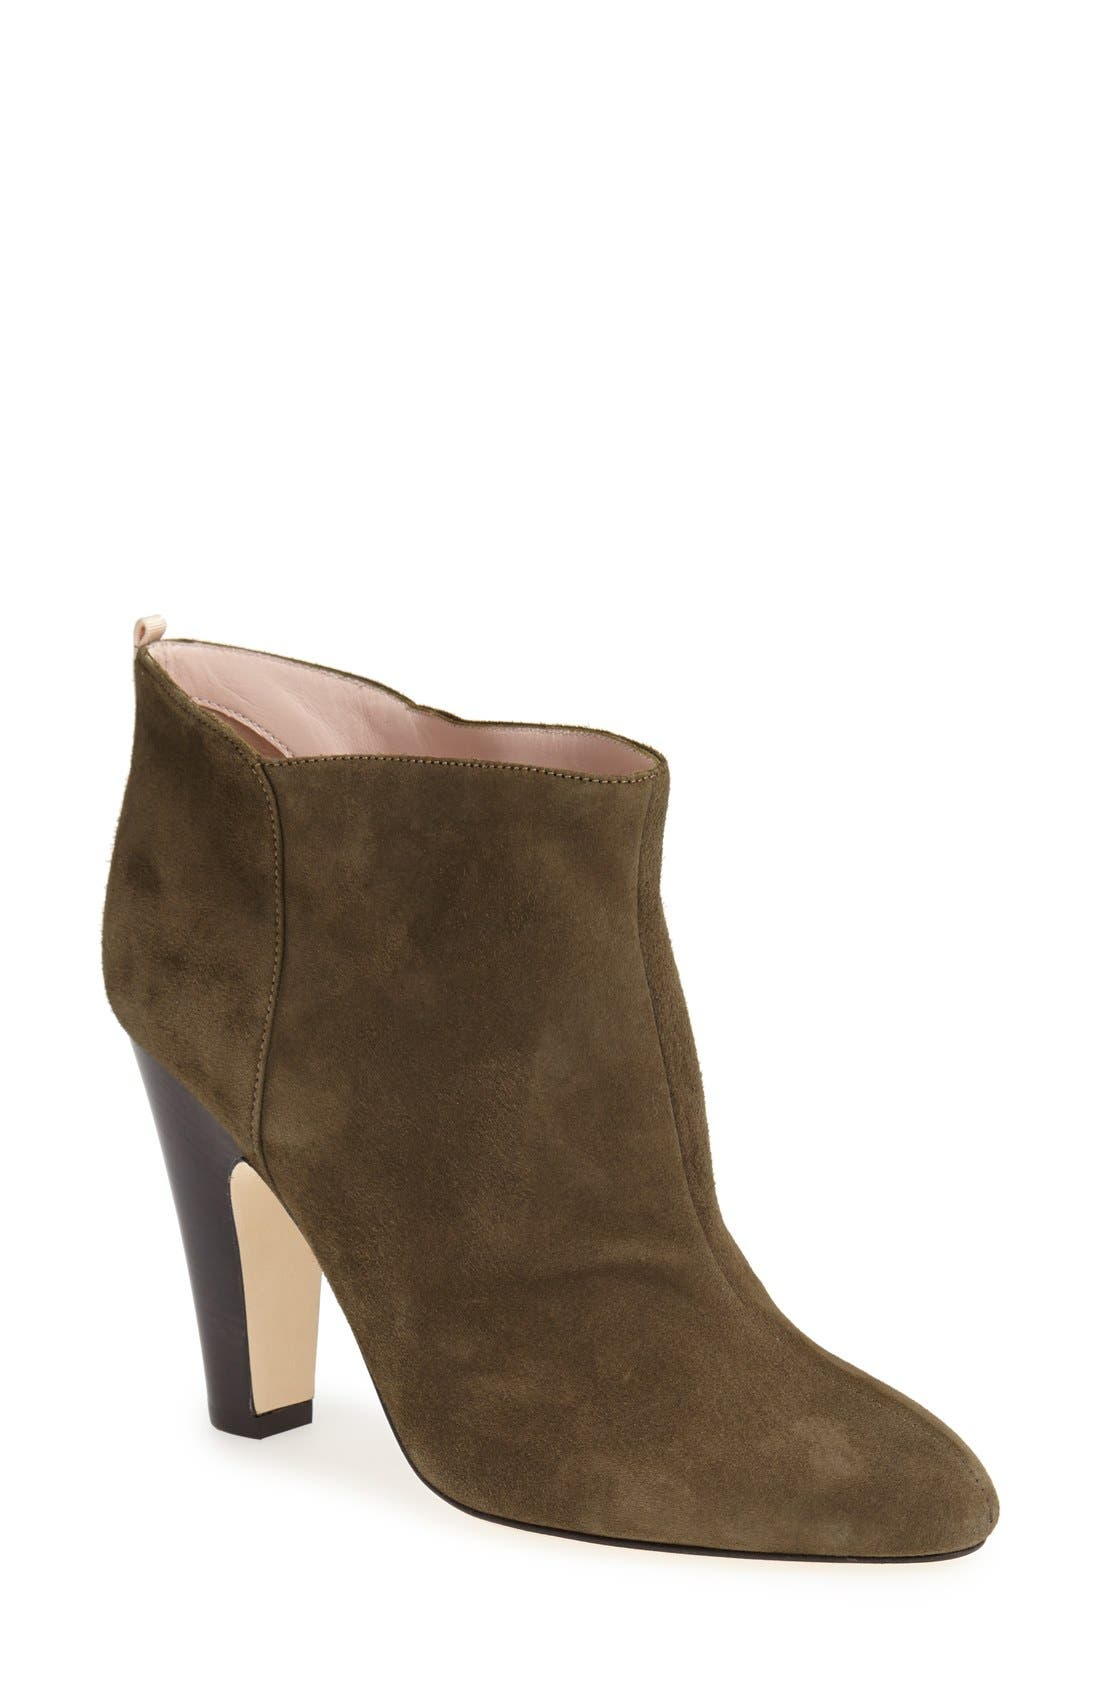 Alternate Image 1 Selected - SJP 'Serge' Suede Bootie (Women)